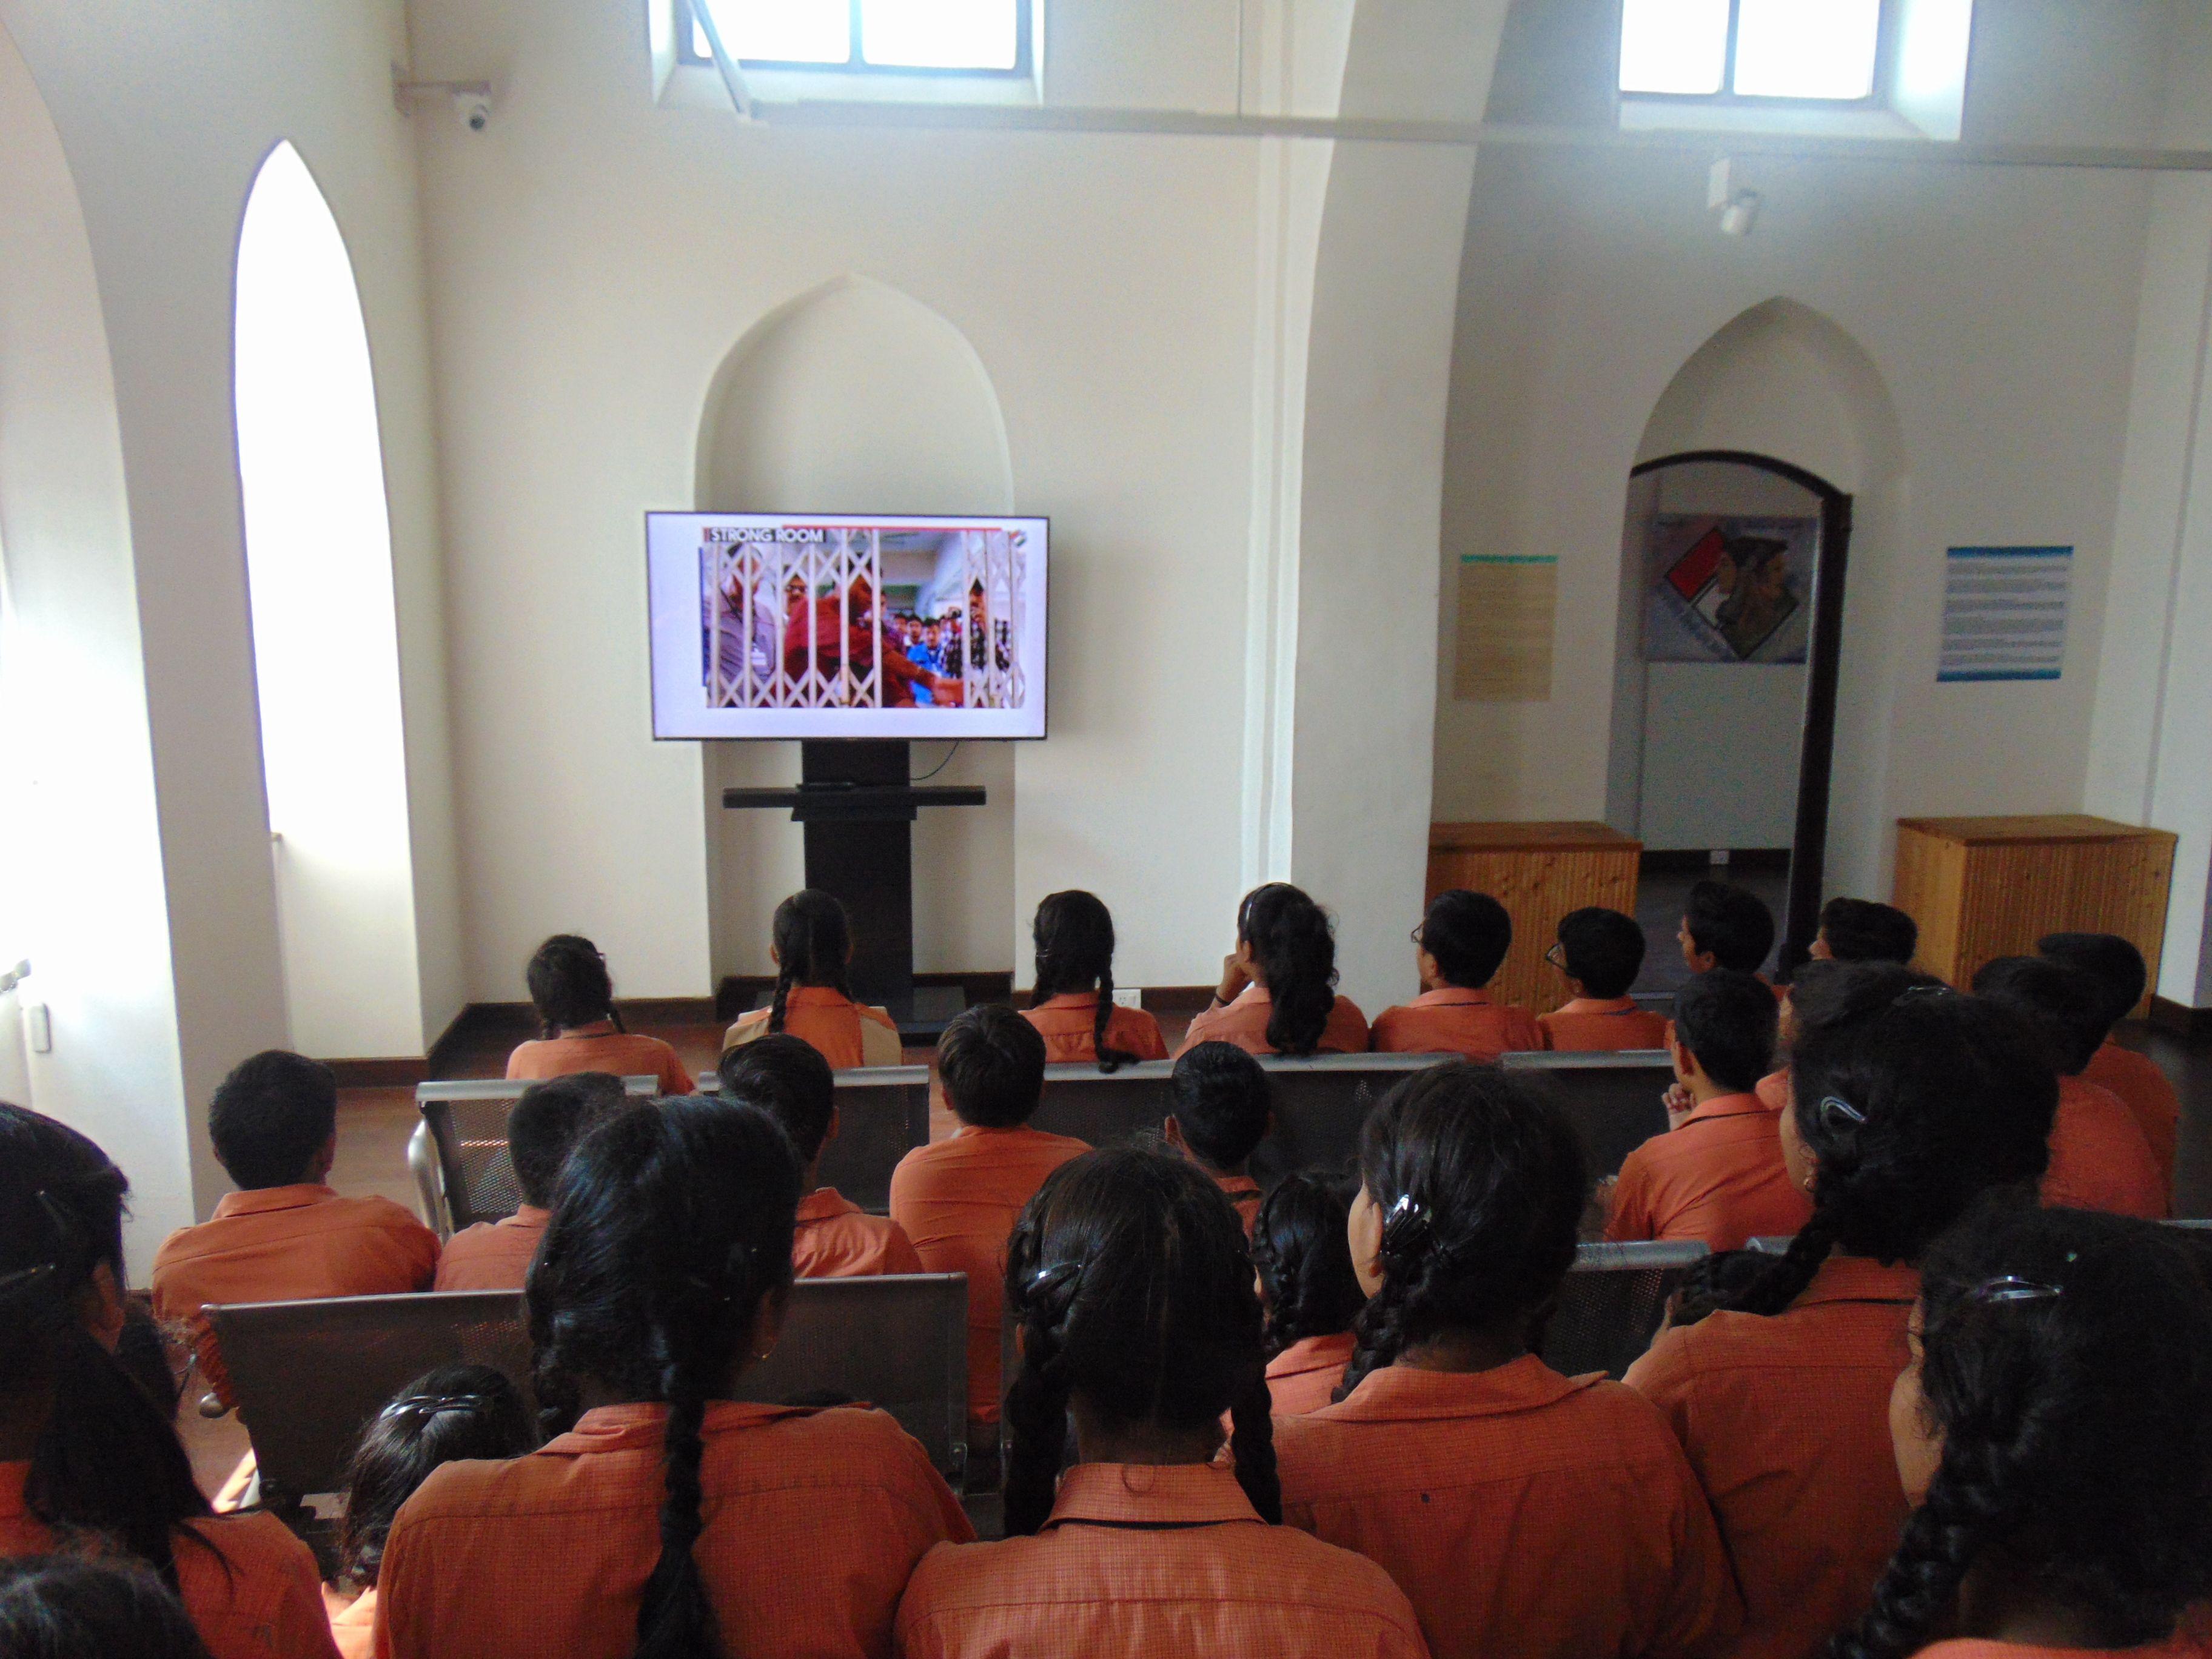 Film show at Election Museum